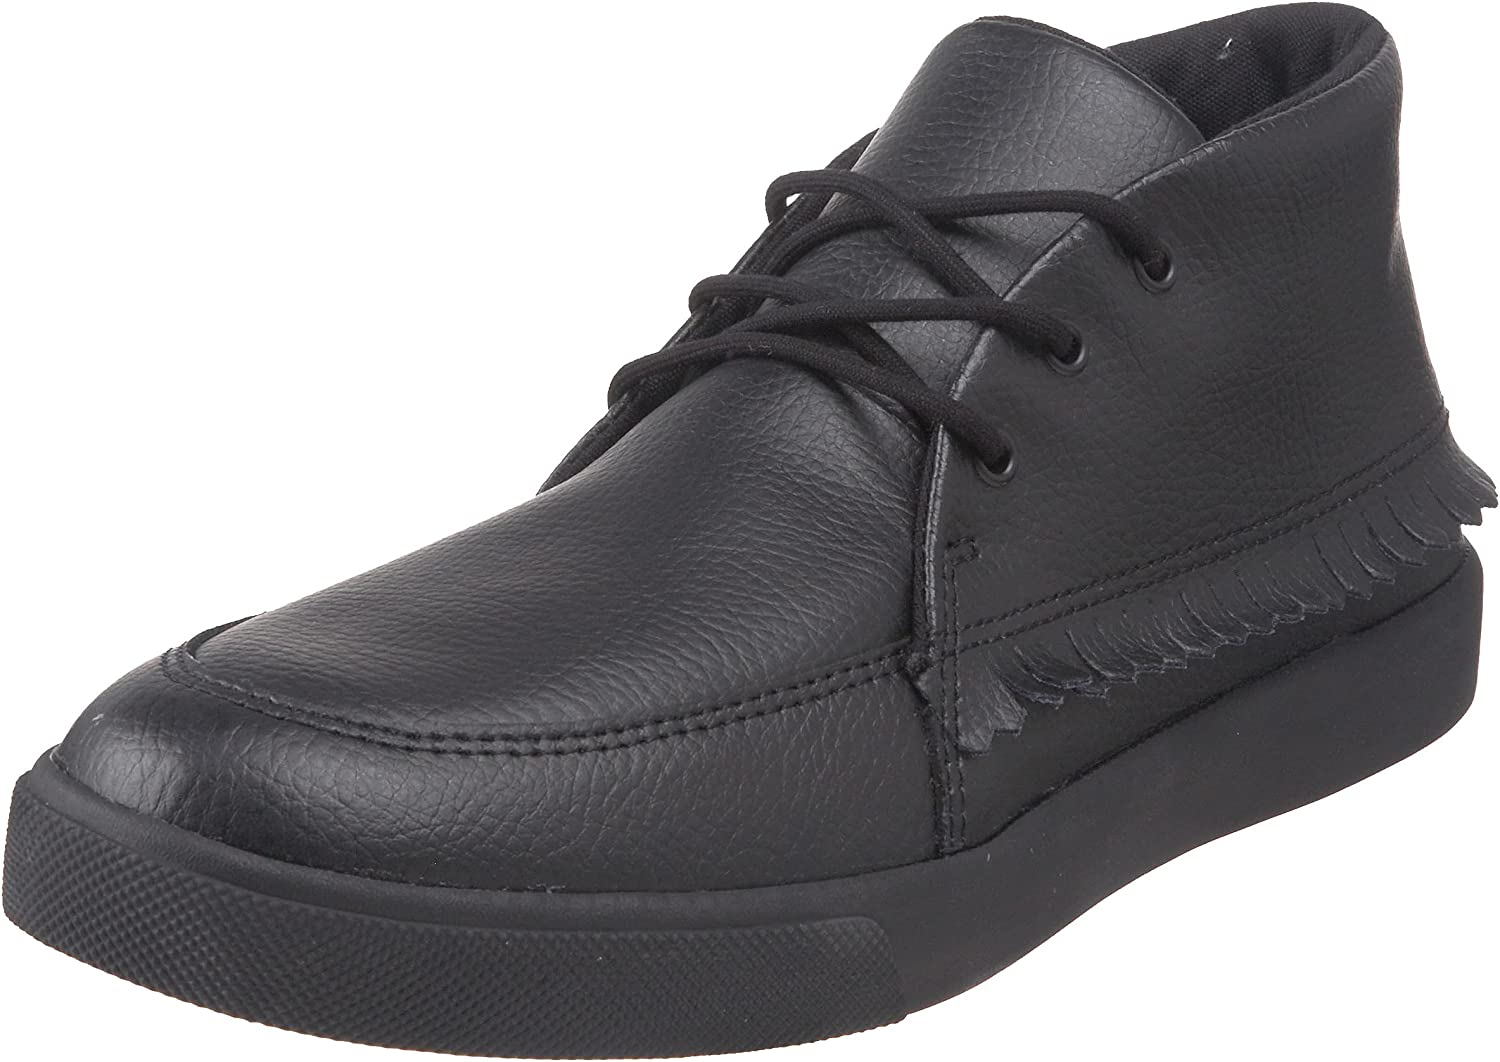 Surplus Men's Mohawk Lace Up